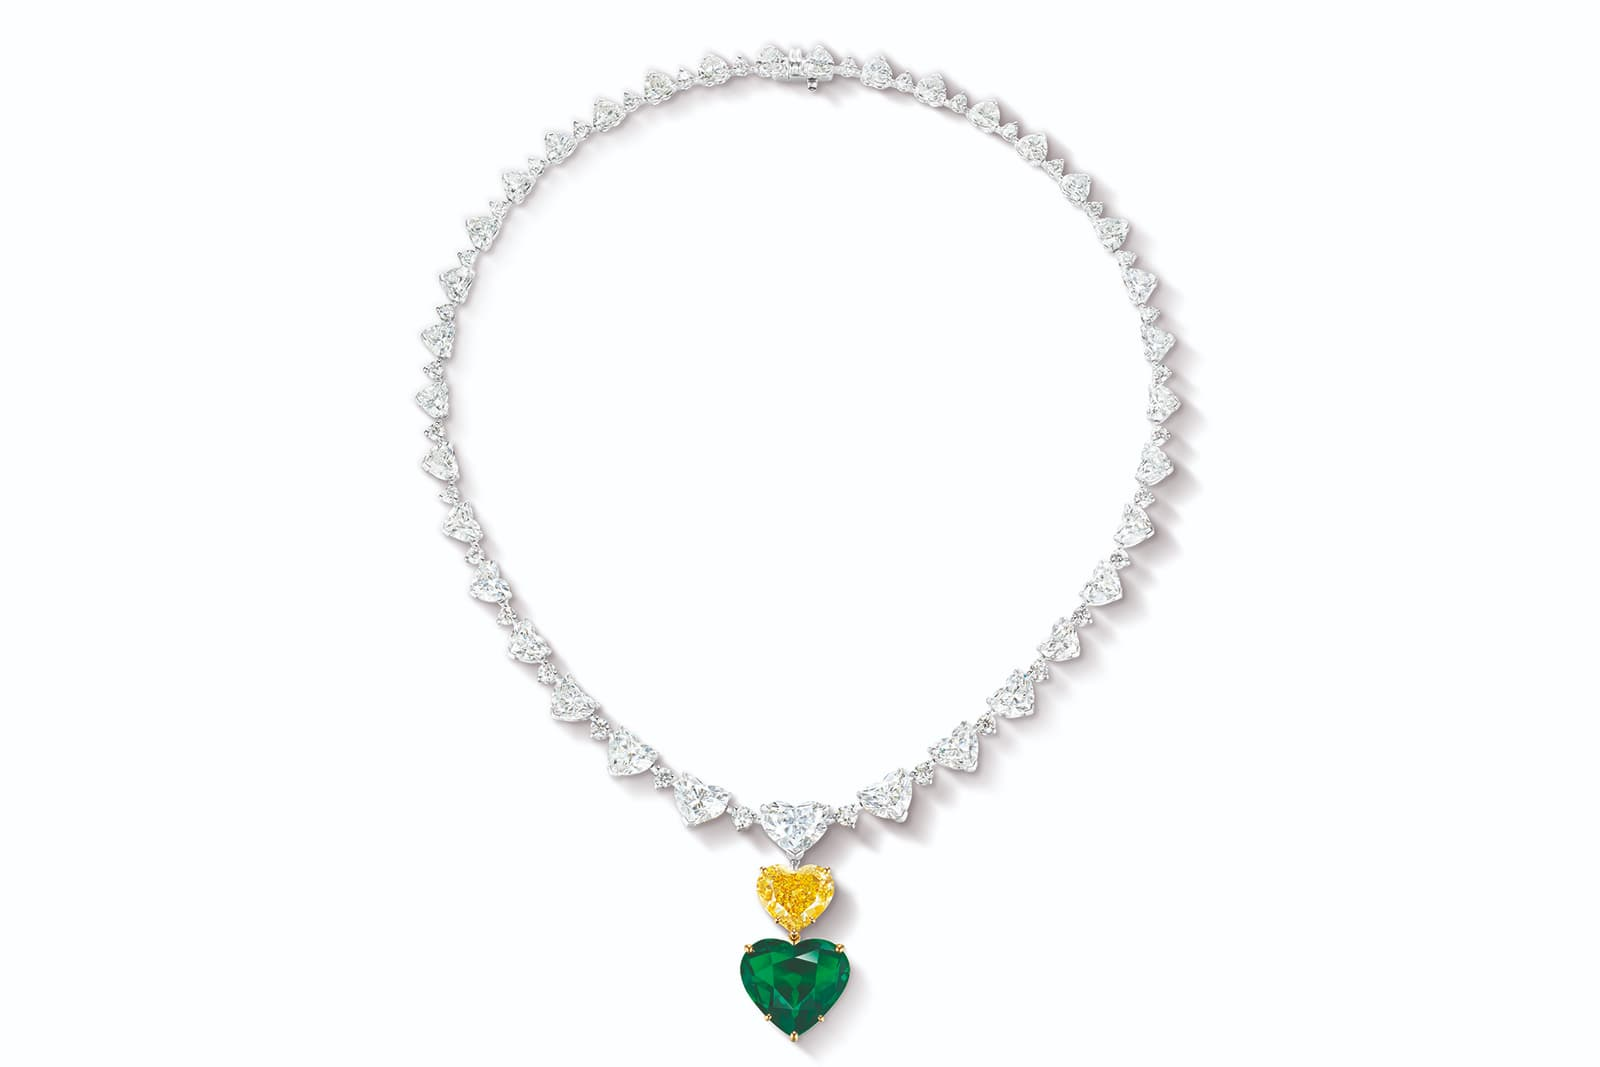 Ronald Abram heart-shape diamond necklace with a 6.34 carat heart-shaped fancy vivid yellow diamond and a 10.88 carat heart-shaped Colombian emerald